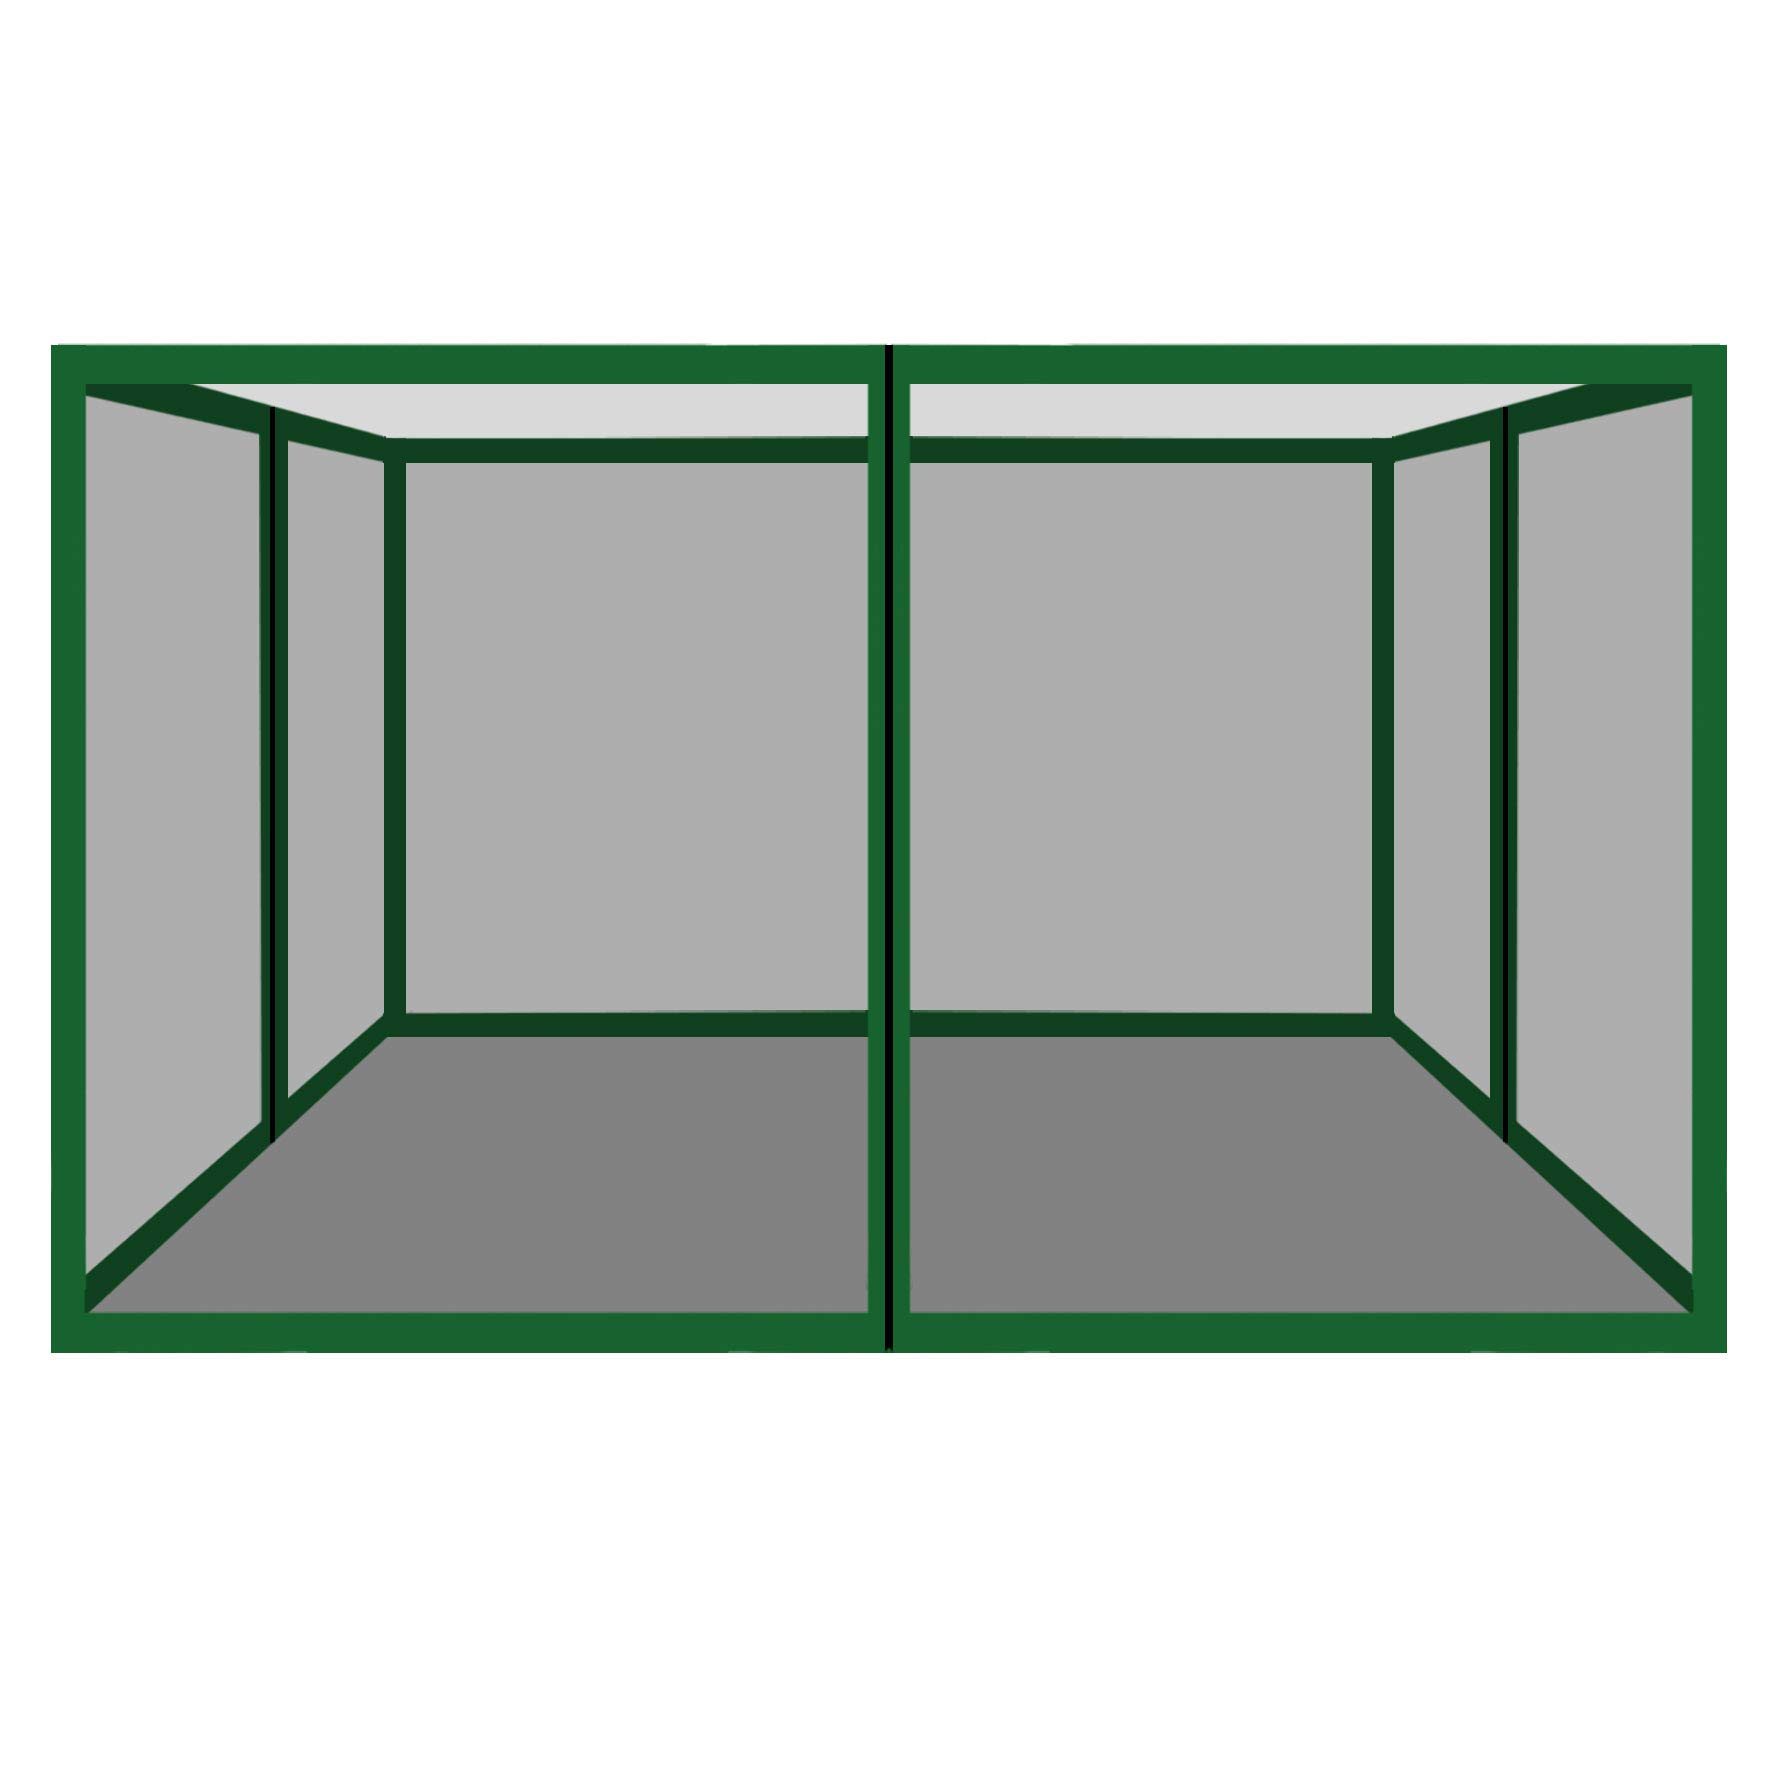 Strong Camel Canopies Sidewalls 10' L X 6.4' W Size Mesh Wall for Tent Outdoor Pop Up Canopy Screen Room, Pack of 4 (Walls Only) (Green) by Strong Camel